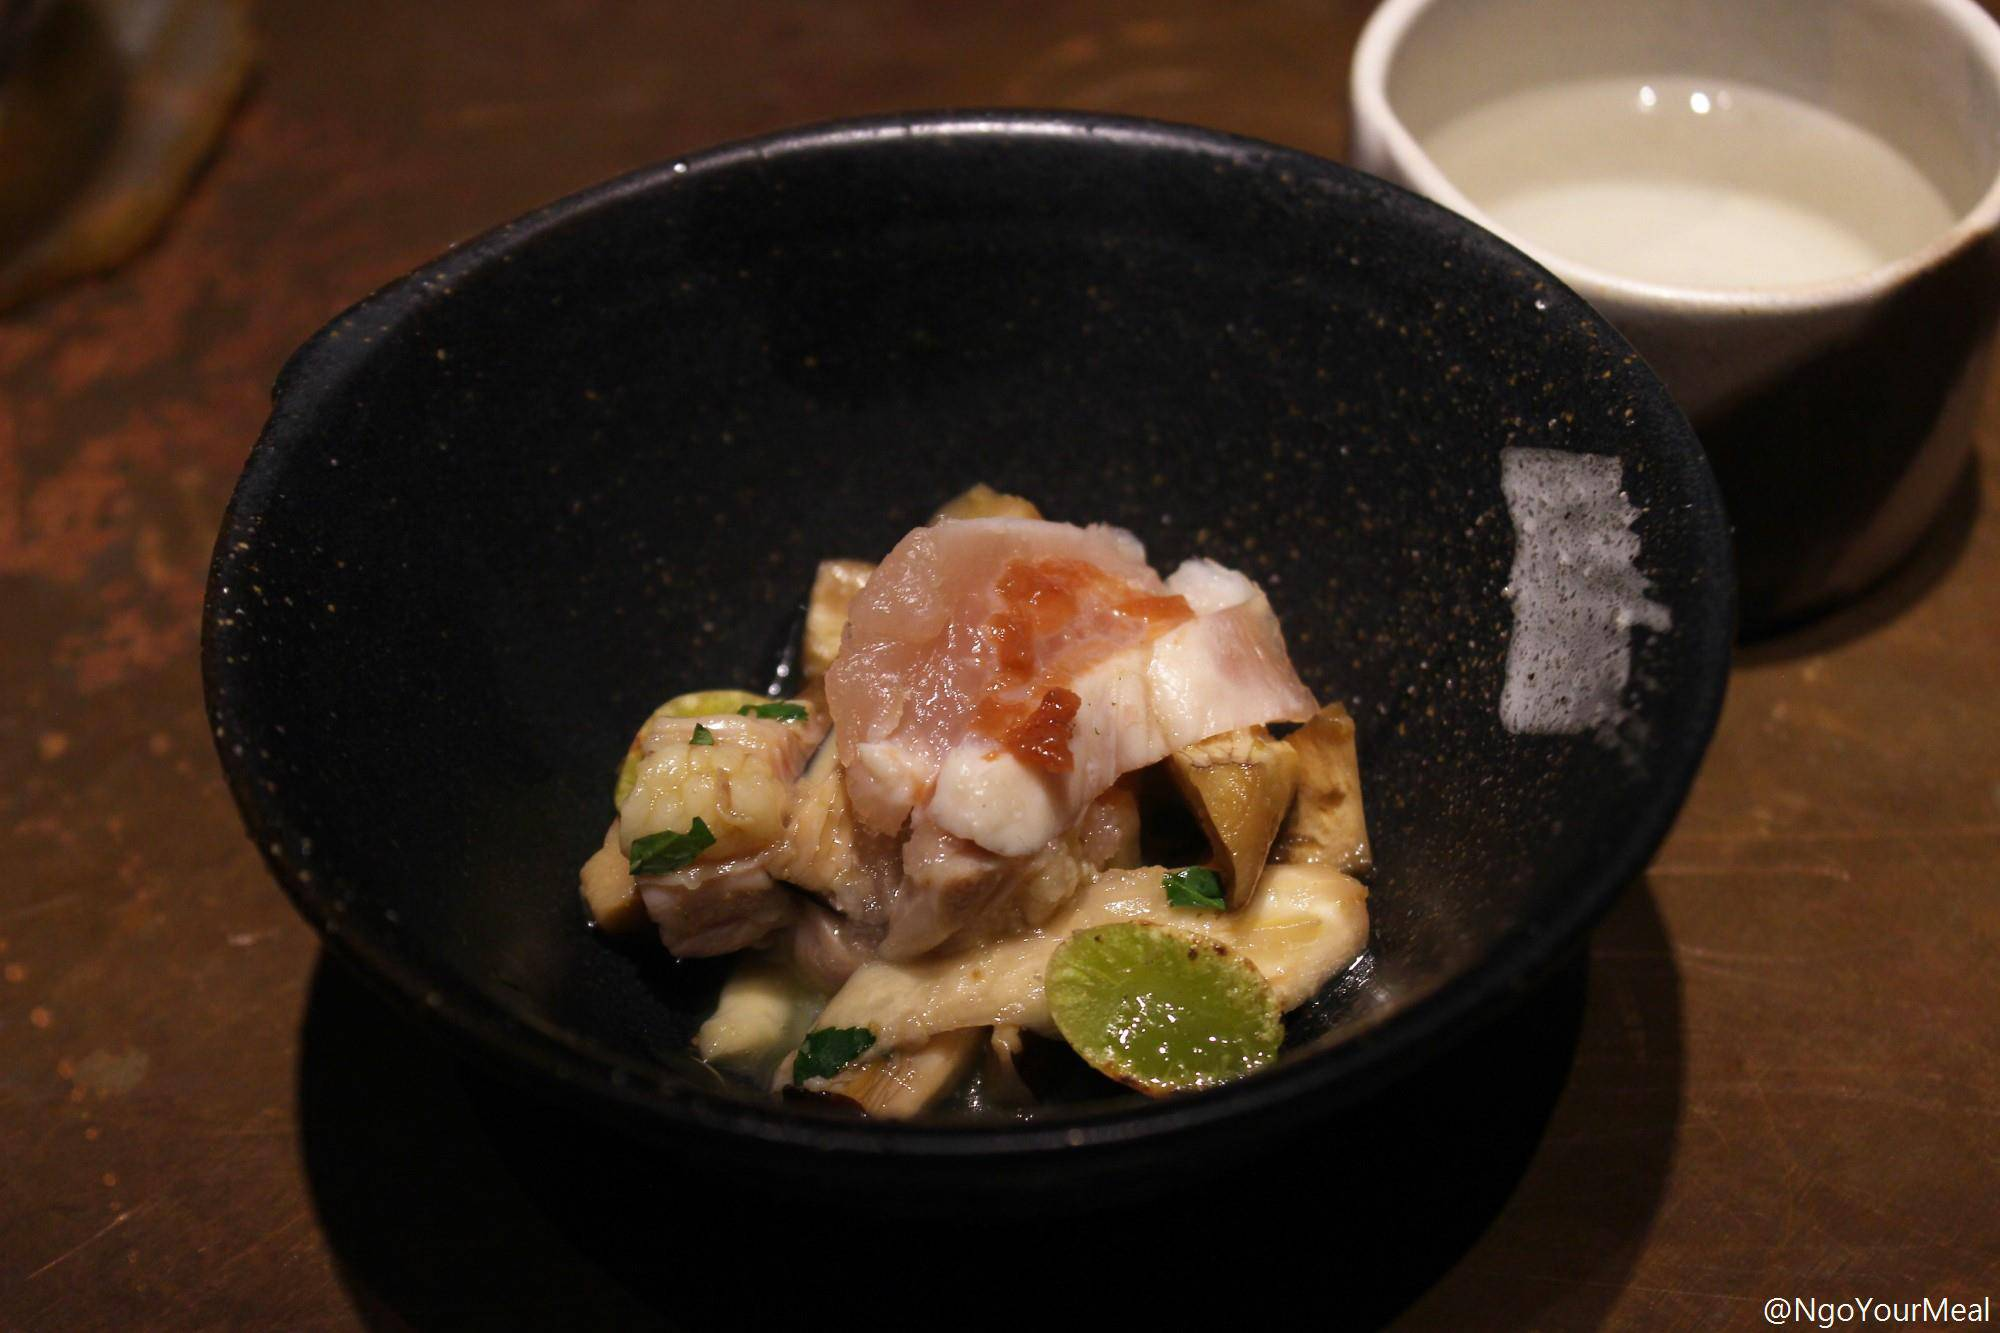 Lightly Seared Chicken Breast Sashimi, Blanched Chicken Neck, Sake and Pear Jelly, Ginkgo Nuts at Mecha Uma in the Philippines